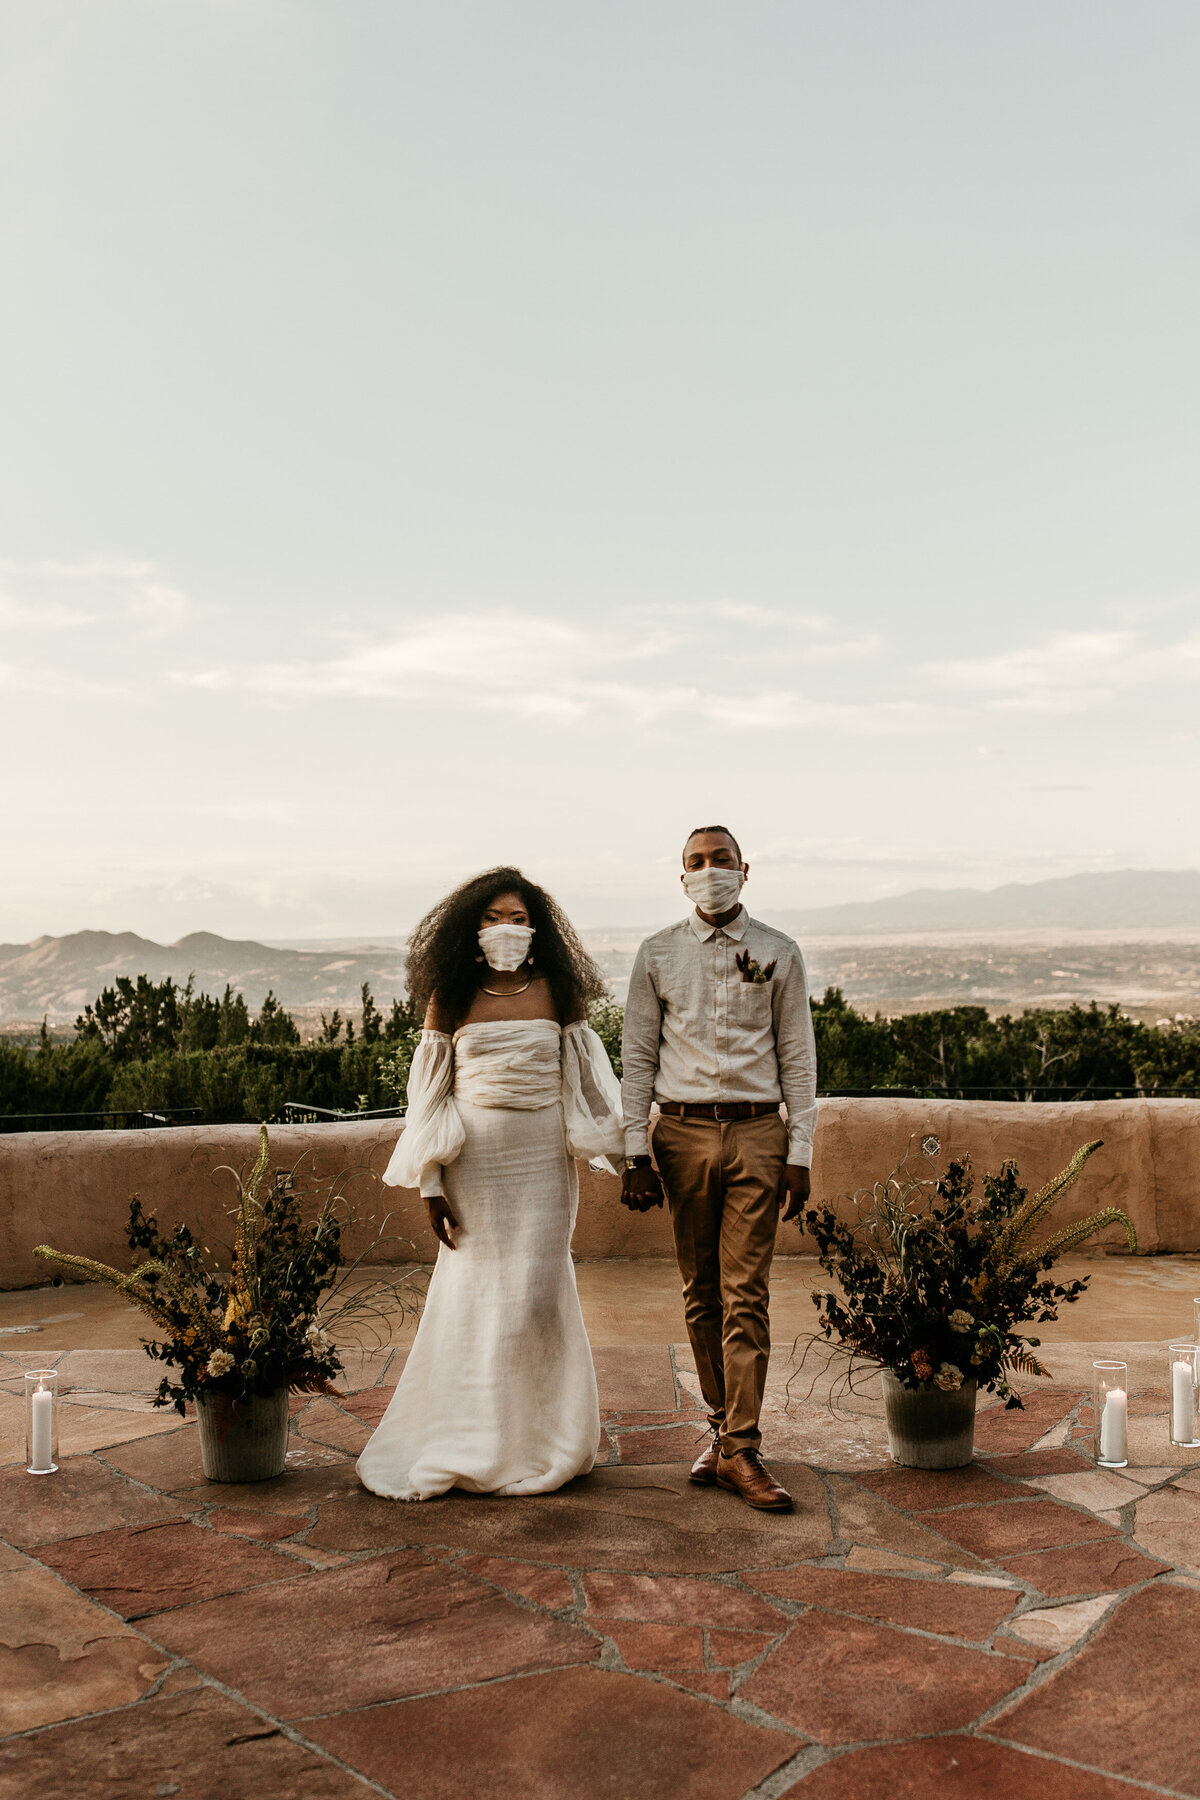 bride and groom holding hands wearing masks at Santa Fe venue courtyard with mountains behind them